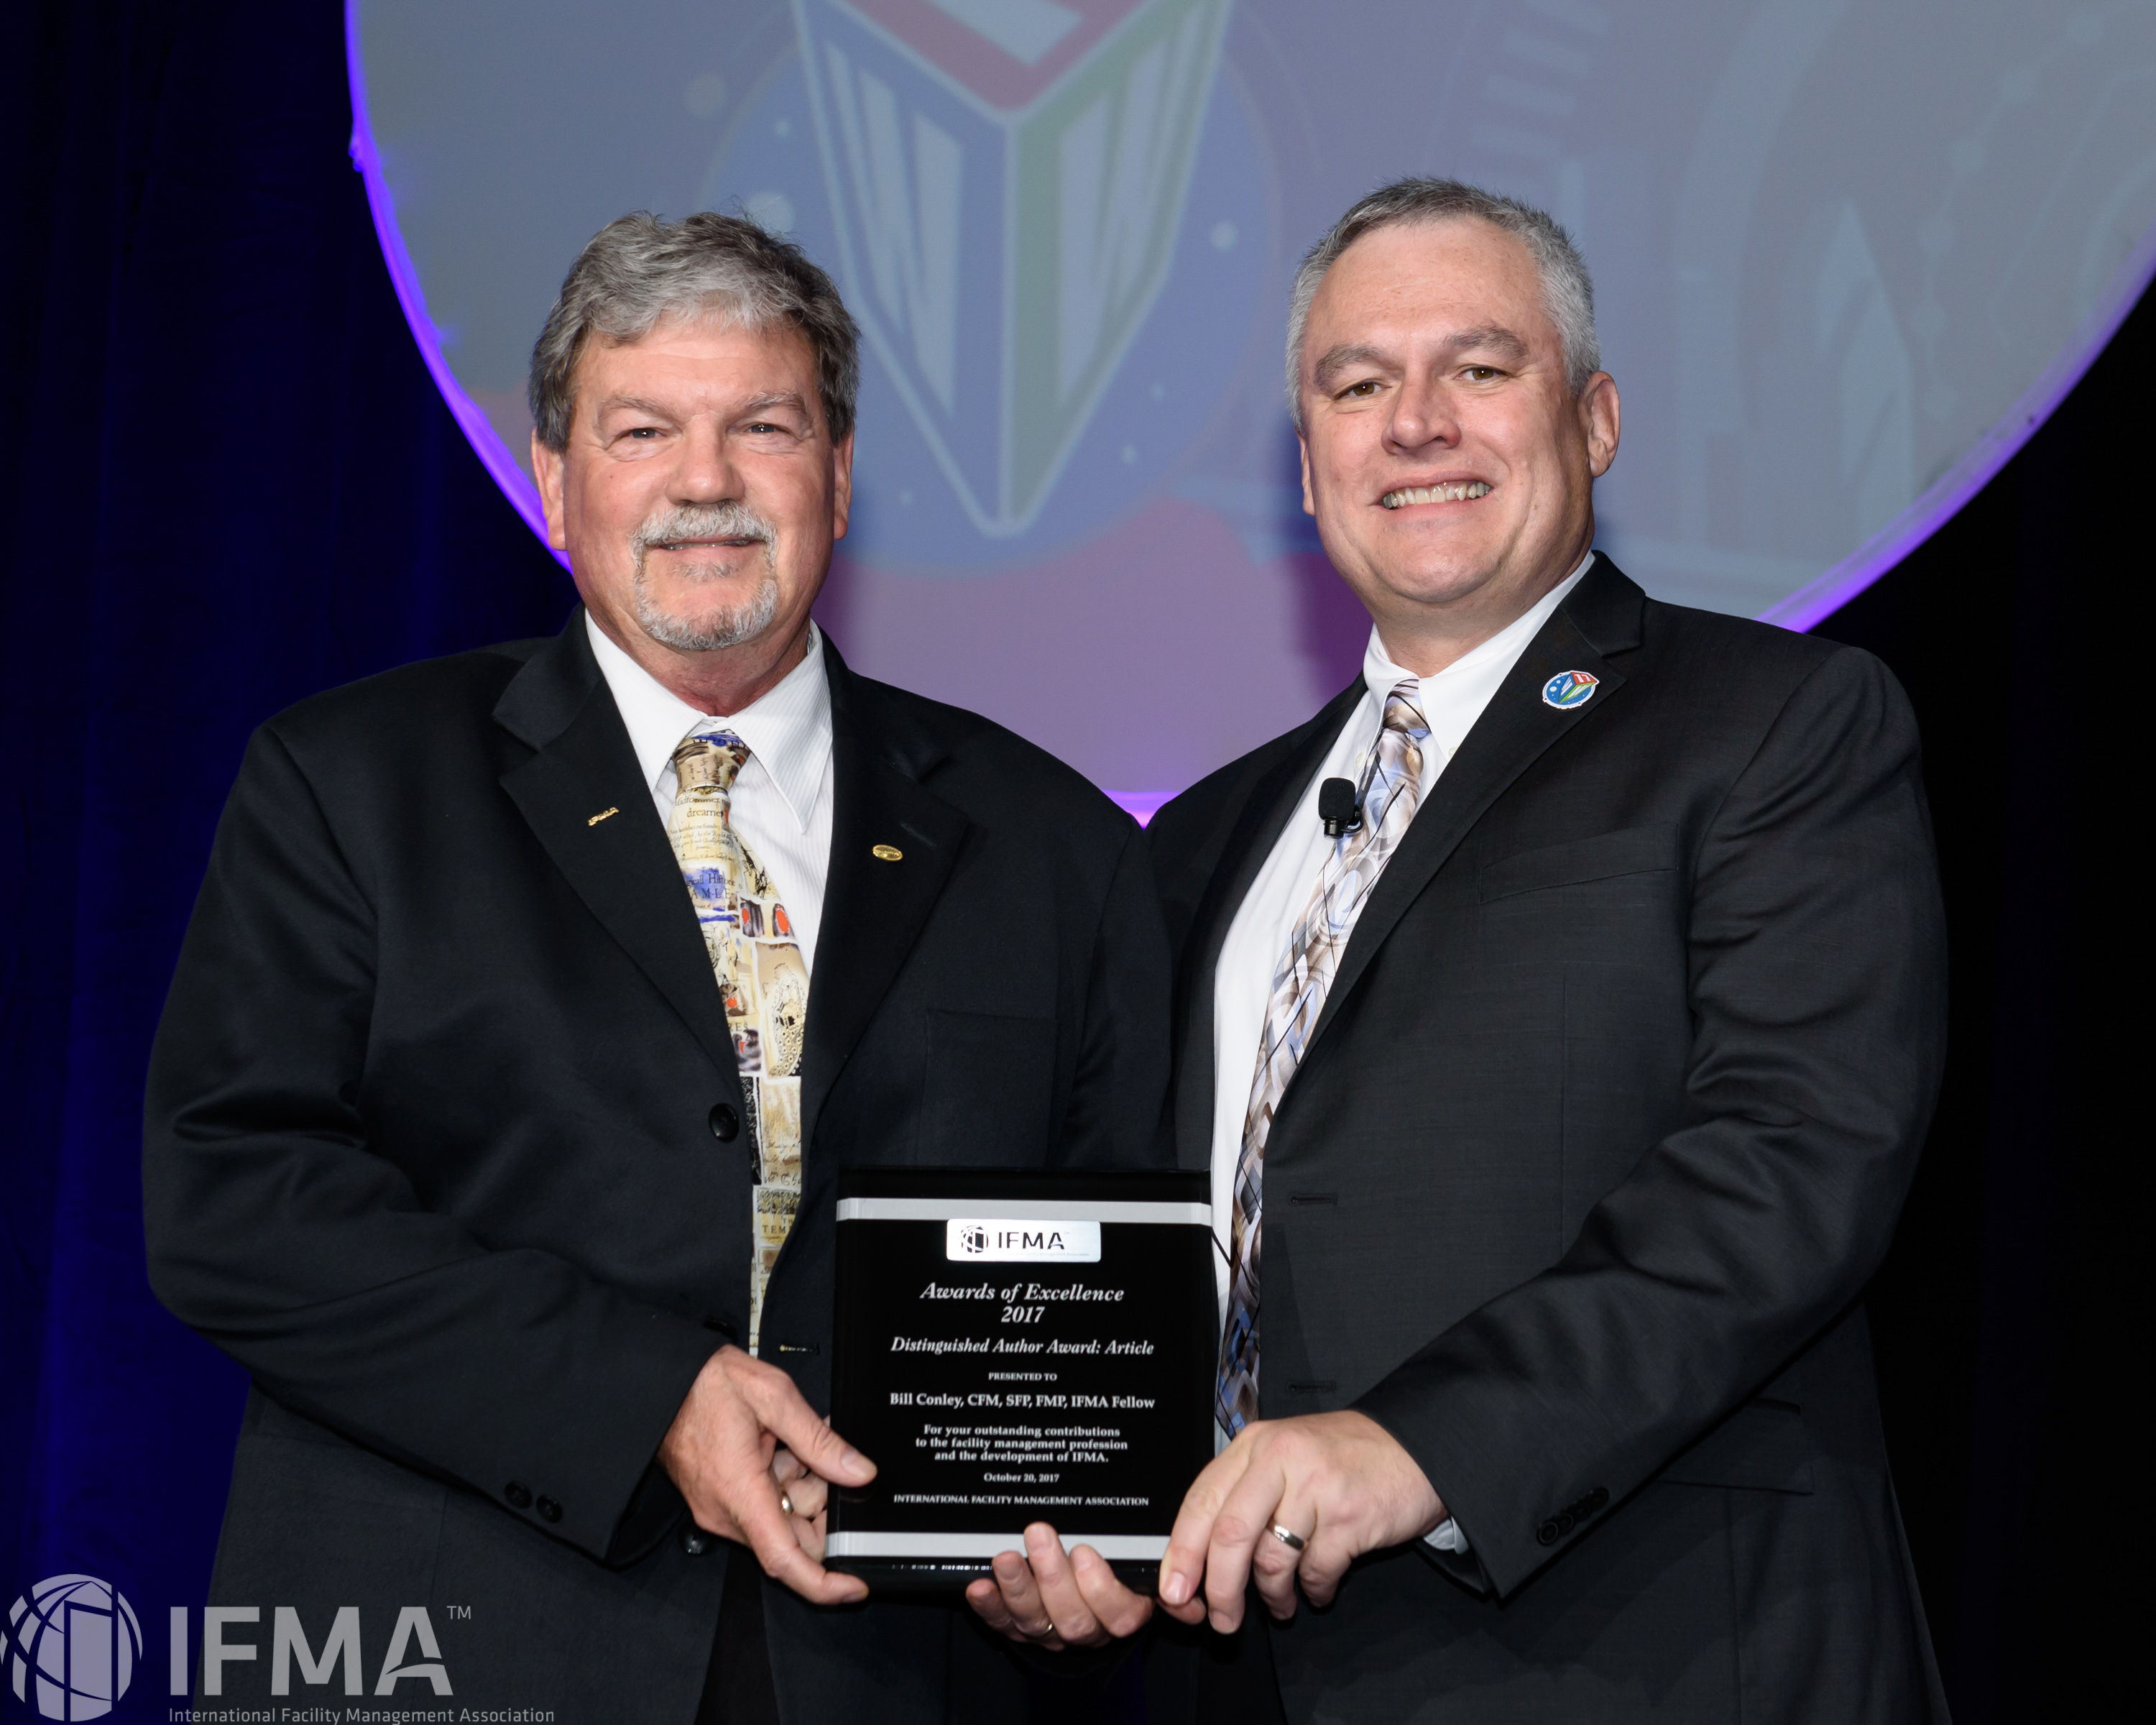 Bill Conley, CFM, SFP, FMP, IFMA Fellow receives Distinguished Author Article of the Year